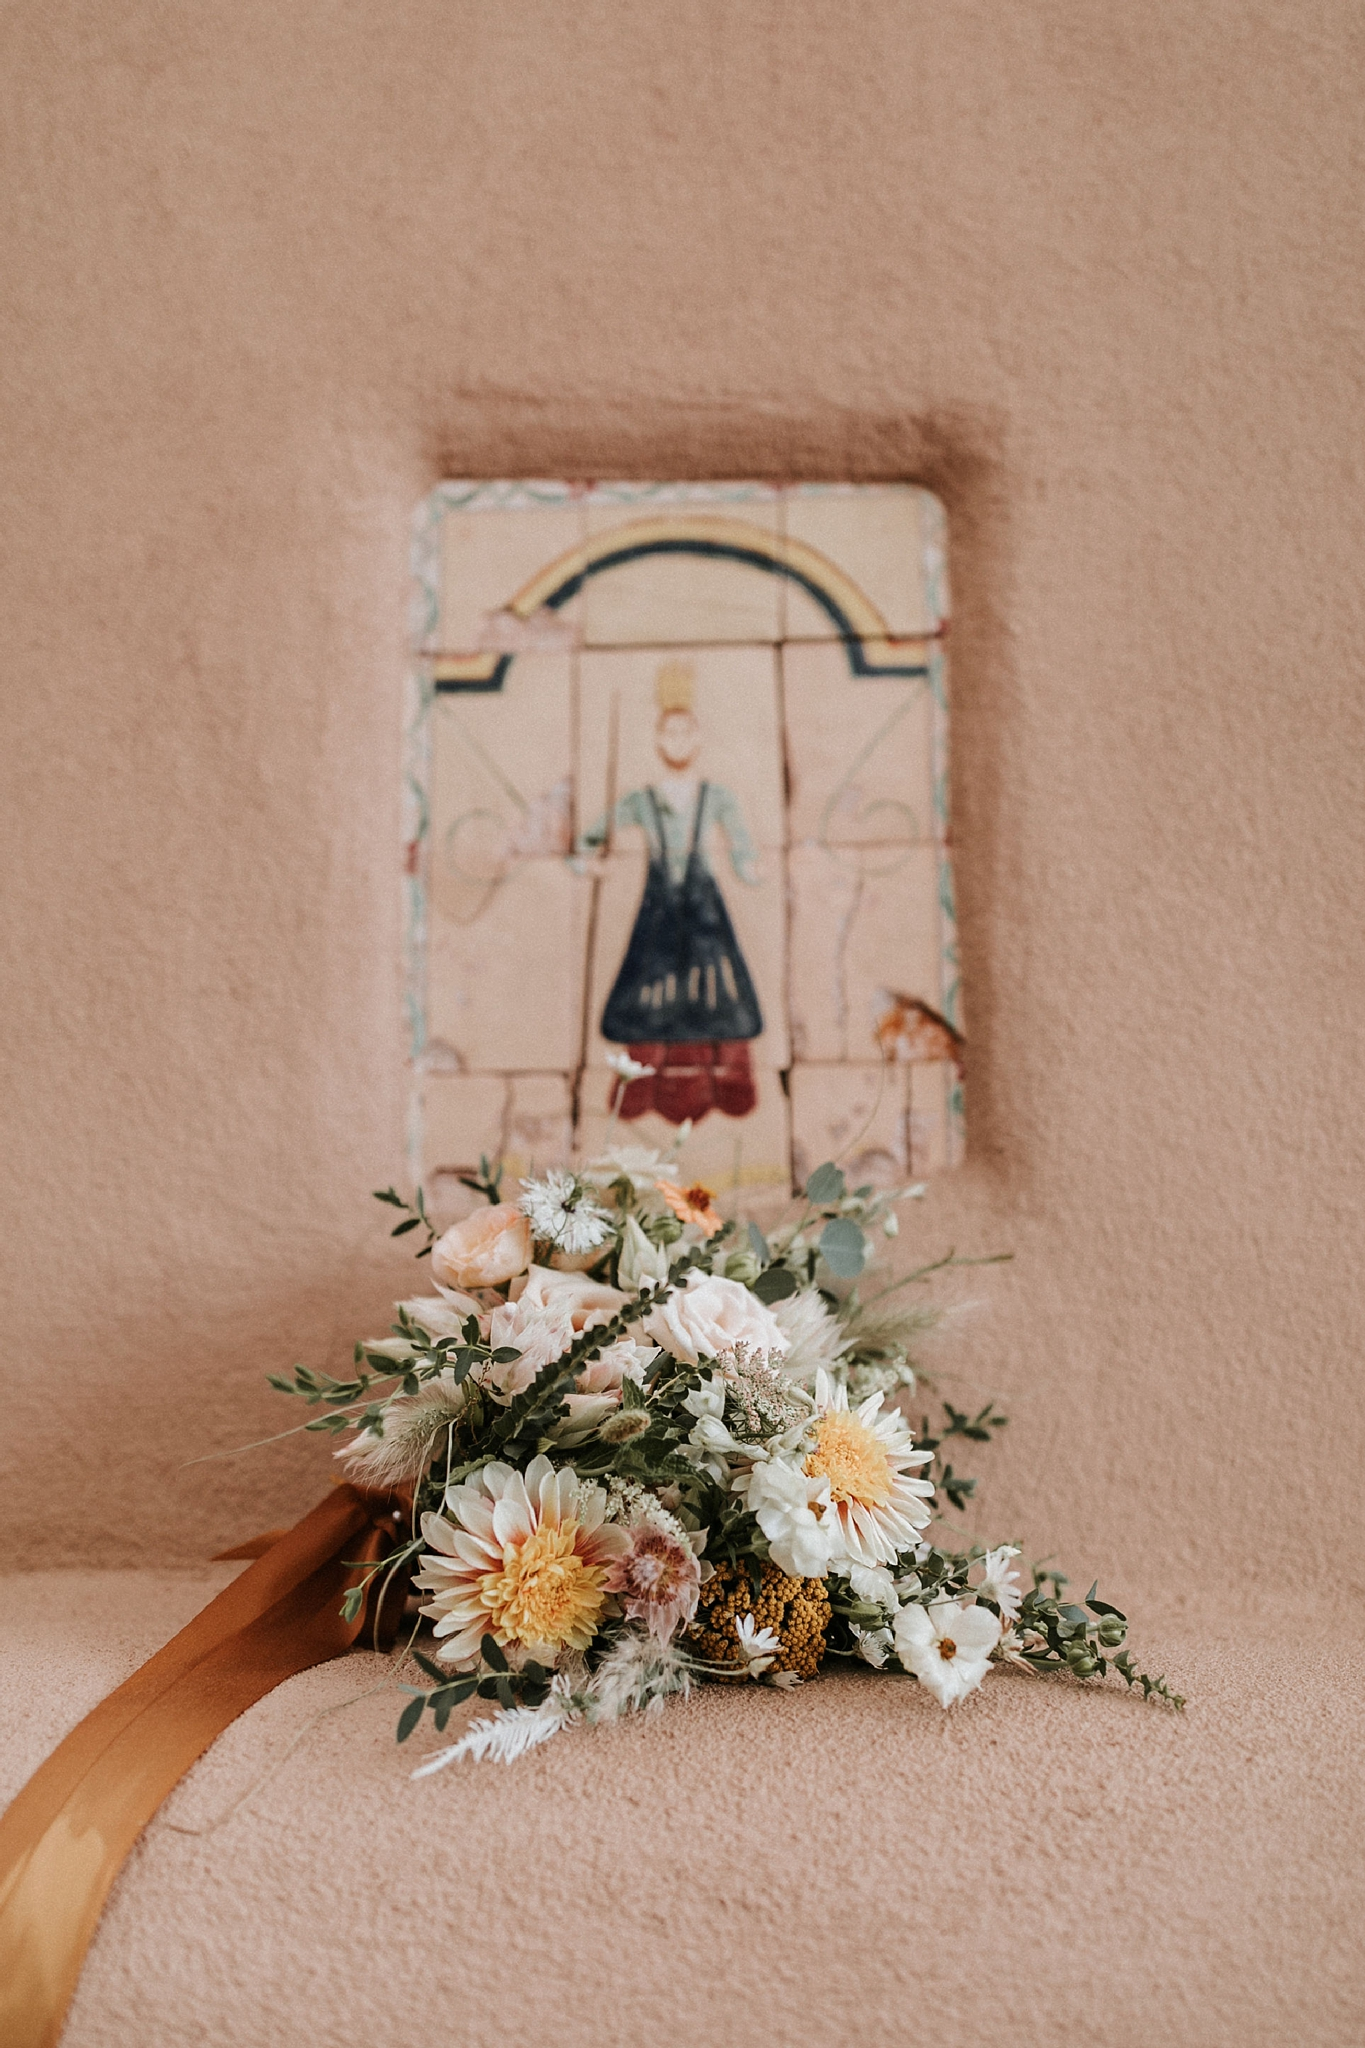 Alicia+lucia+photography+-+albuquerque+wedding+photographer+-+santa+fe+wedding+photography+-+new+mexico+wedding+photographer+-+new+mexico+wedding+-+wedding+photographer+-+wedding+photographer+team_0131.jpg